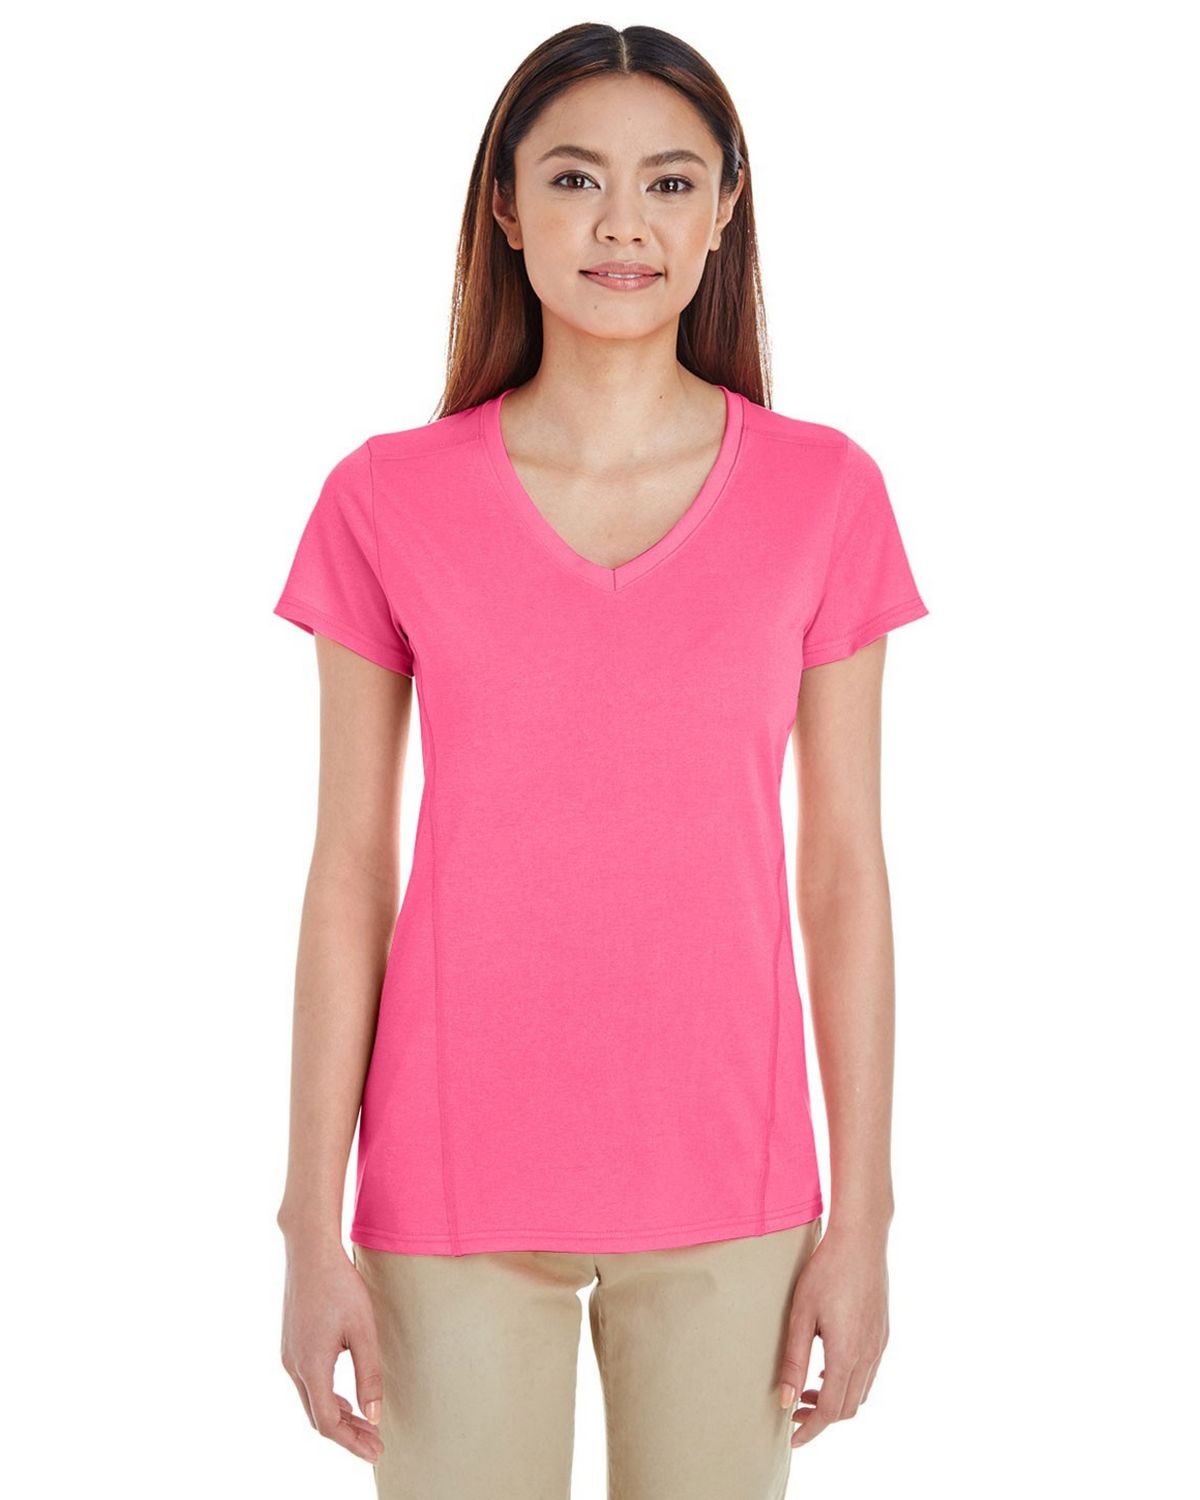 Gildan G47V00L Ladies V-Neck Tech Tee - Safety Pink - 2X G47V00L